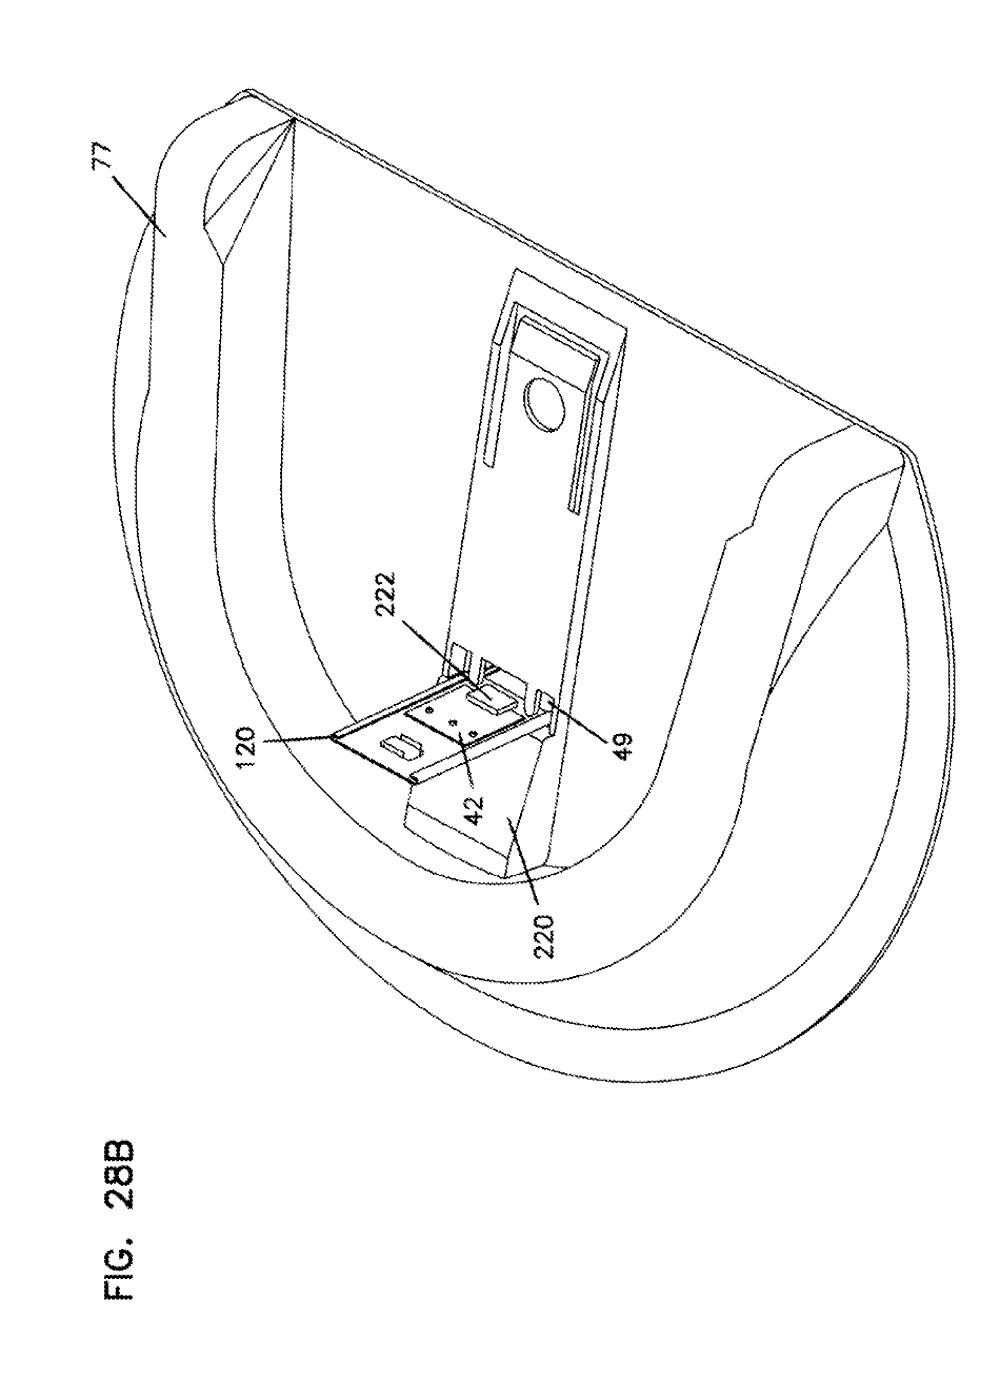 medium resolution of us20070161879a1 analyte monitoring device and methods of use google patents